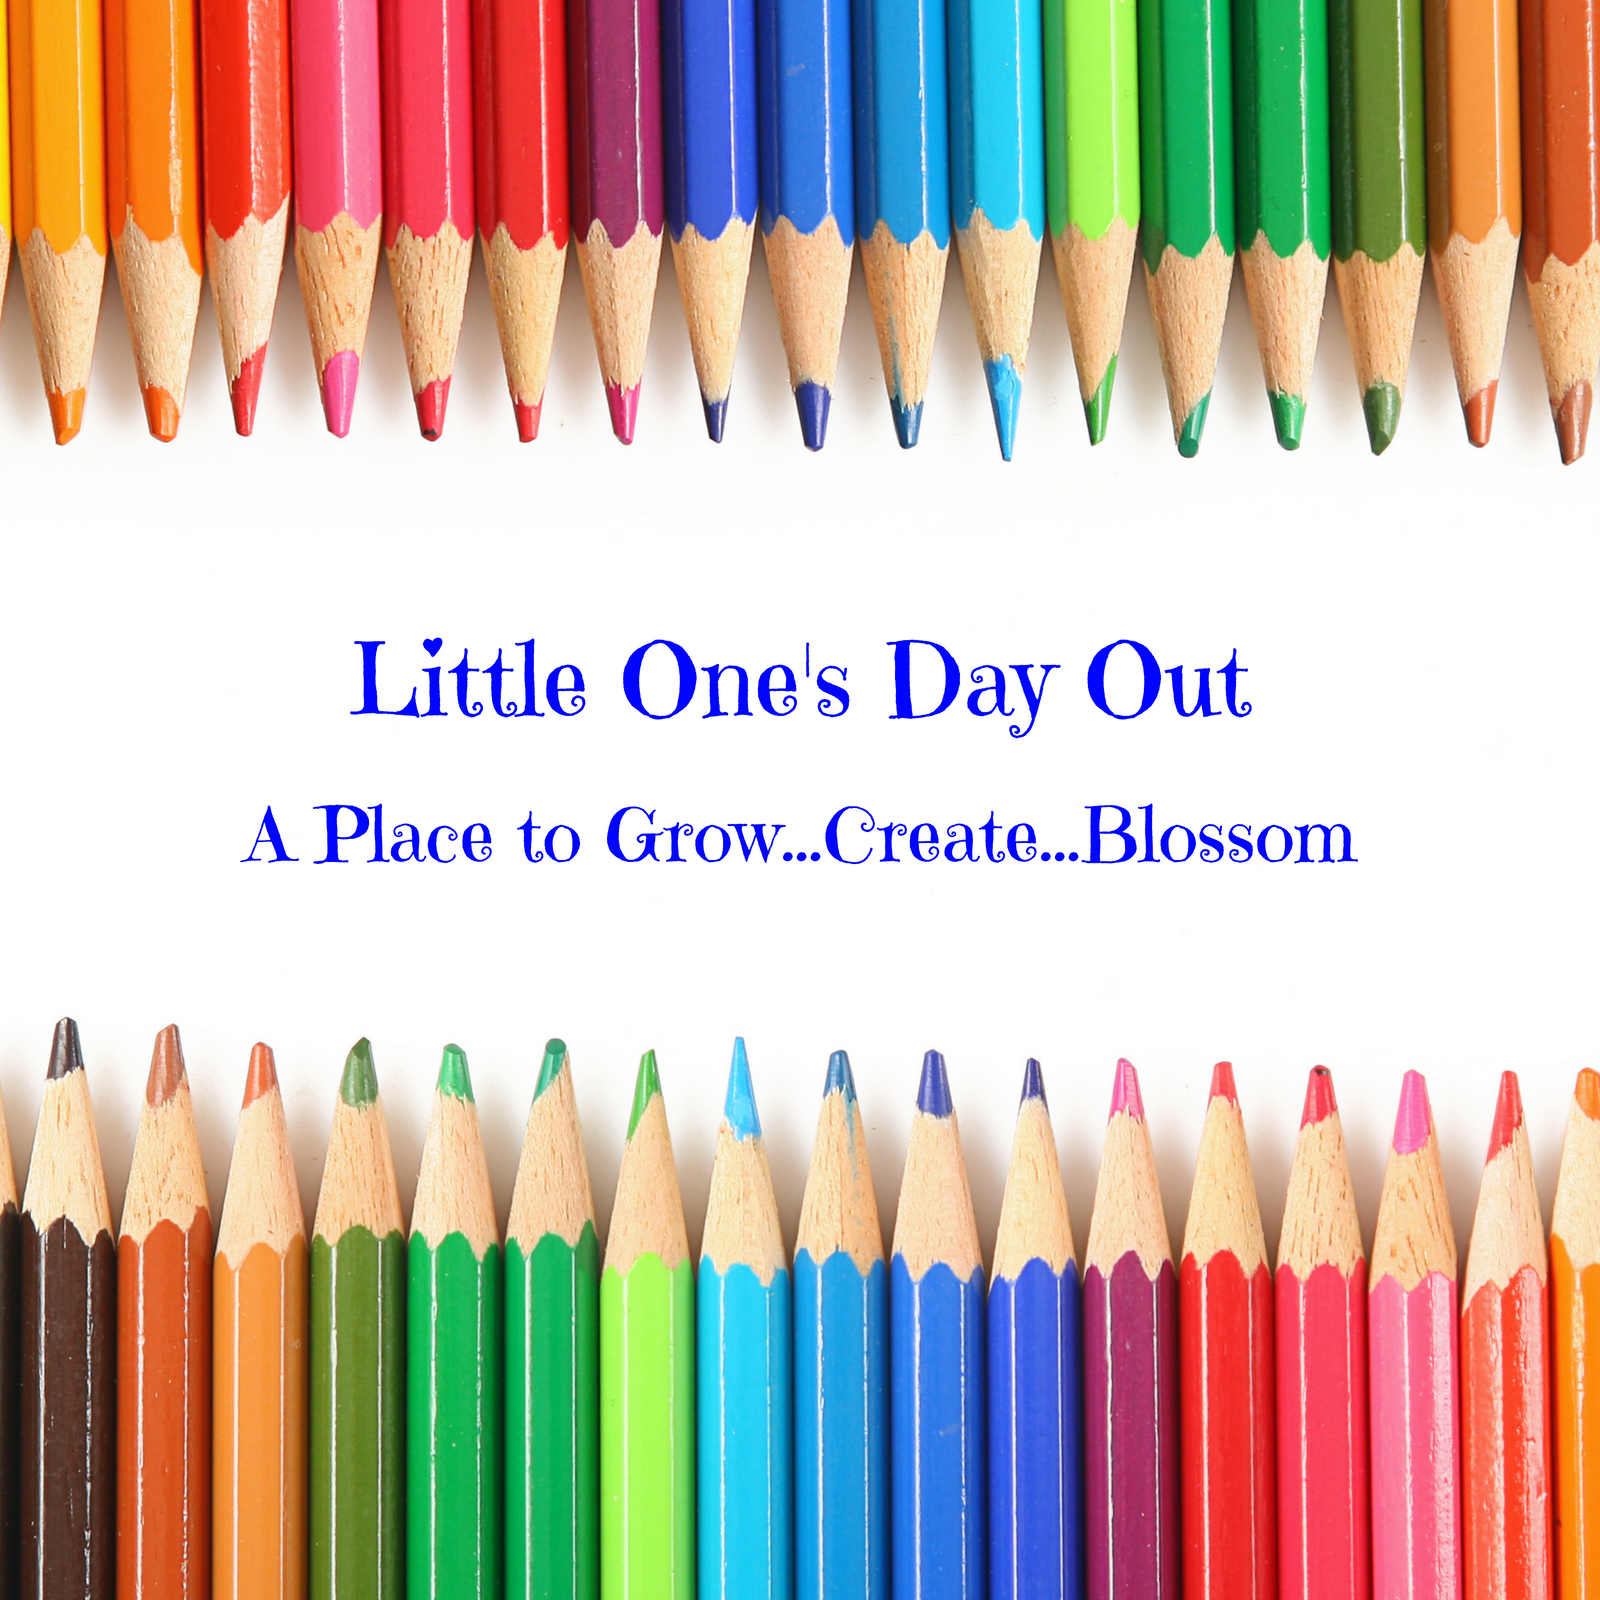 - Little One's Day Out (LODO) is a preschool that is a ministry of Columbia United Church of Christ (CUCC). The mission of Little One's Day Out is to support families in their children's education and nurture children in a Christian Setting.